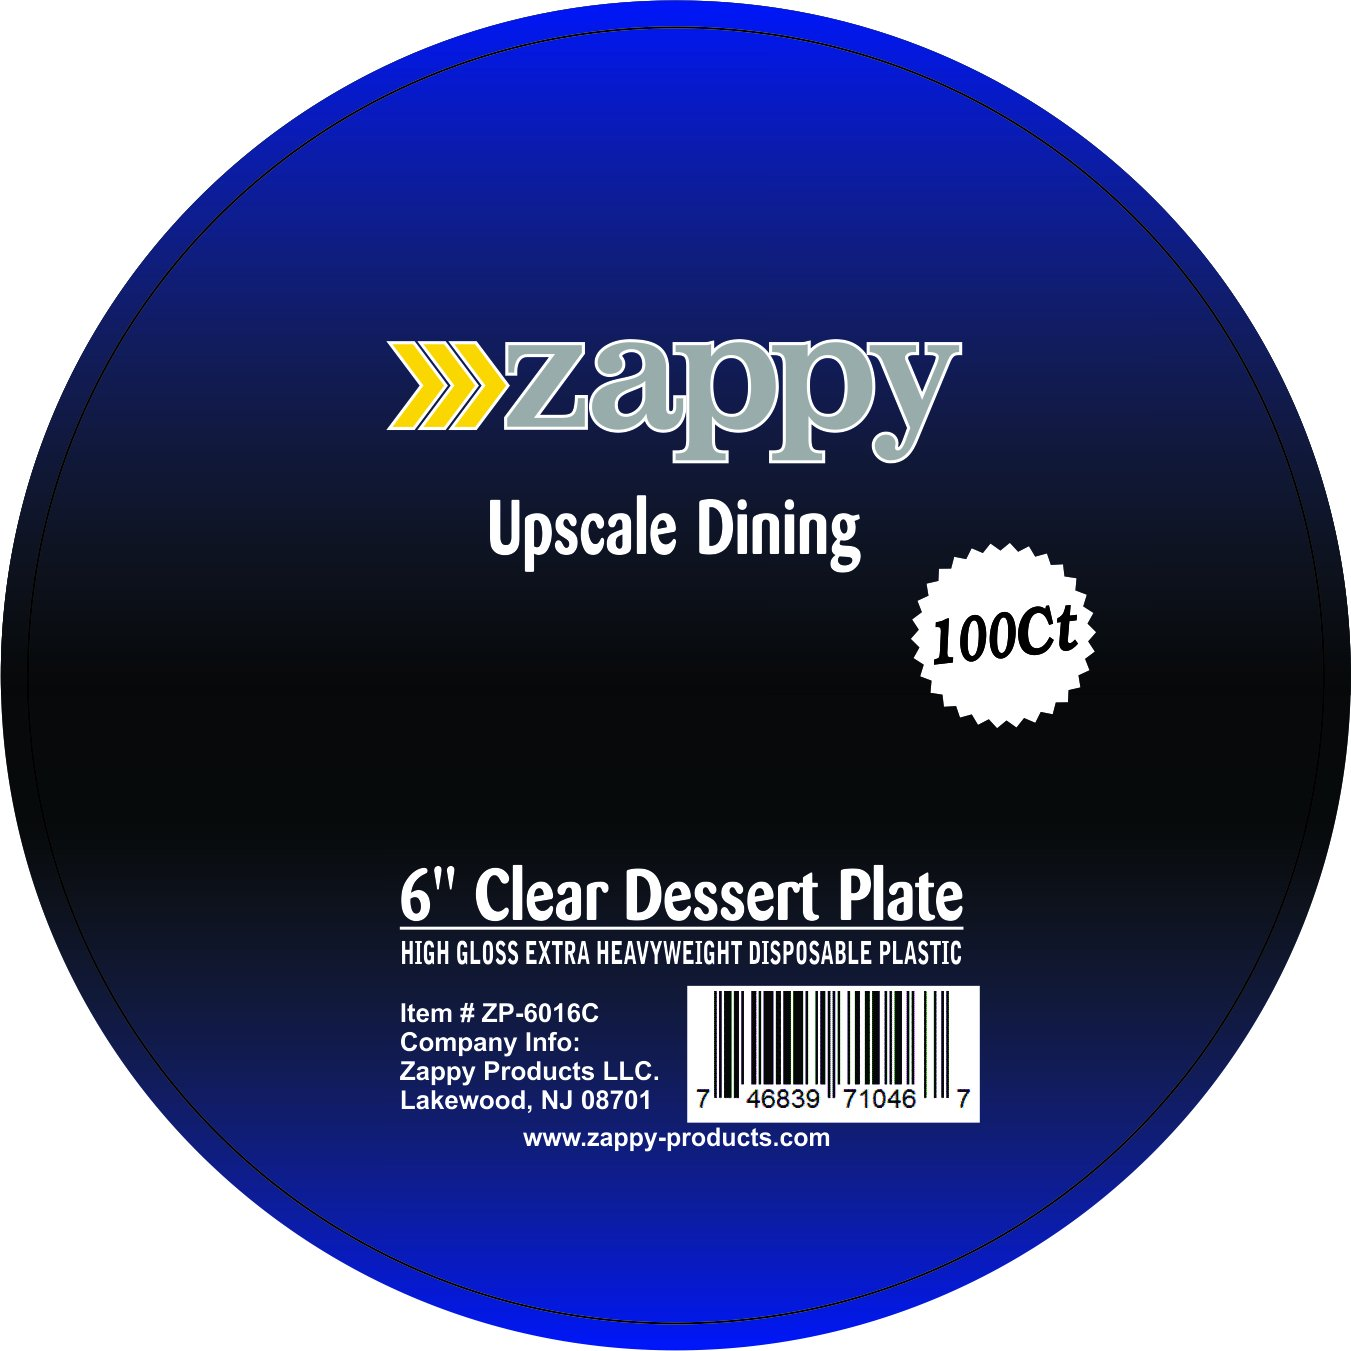 Zappy 100 Disposable Plastic Dessert Plates Premium Quality Plastic Plates, 6'' Hard Disposable Plastic Plates, Clear Appetizer Dinner Party Plates Great Dessert Appetizer Wedding Plates Party Plates by zappy